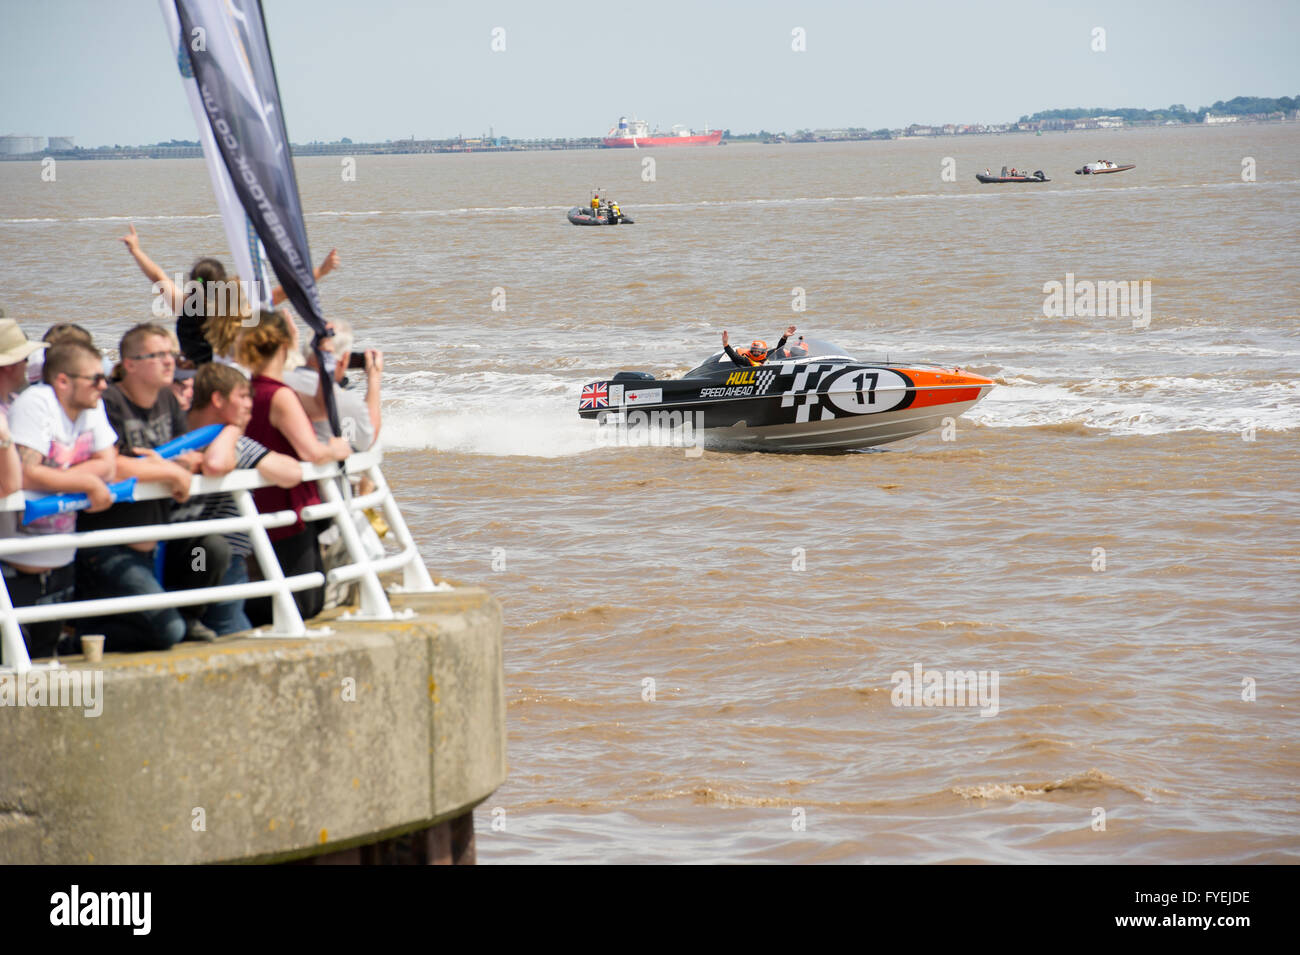 P1 Superstock powerboat racing along the Humber past the Marina in the city of Kingston Upon Hull, UK City Of Culture - Stock Image